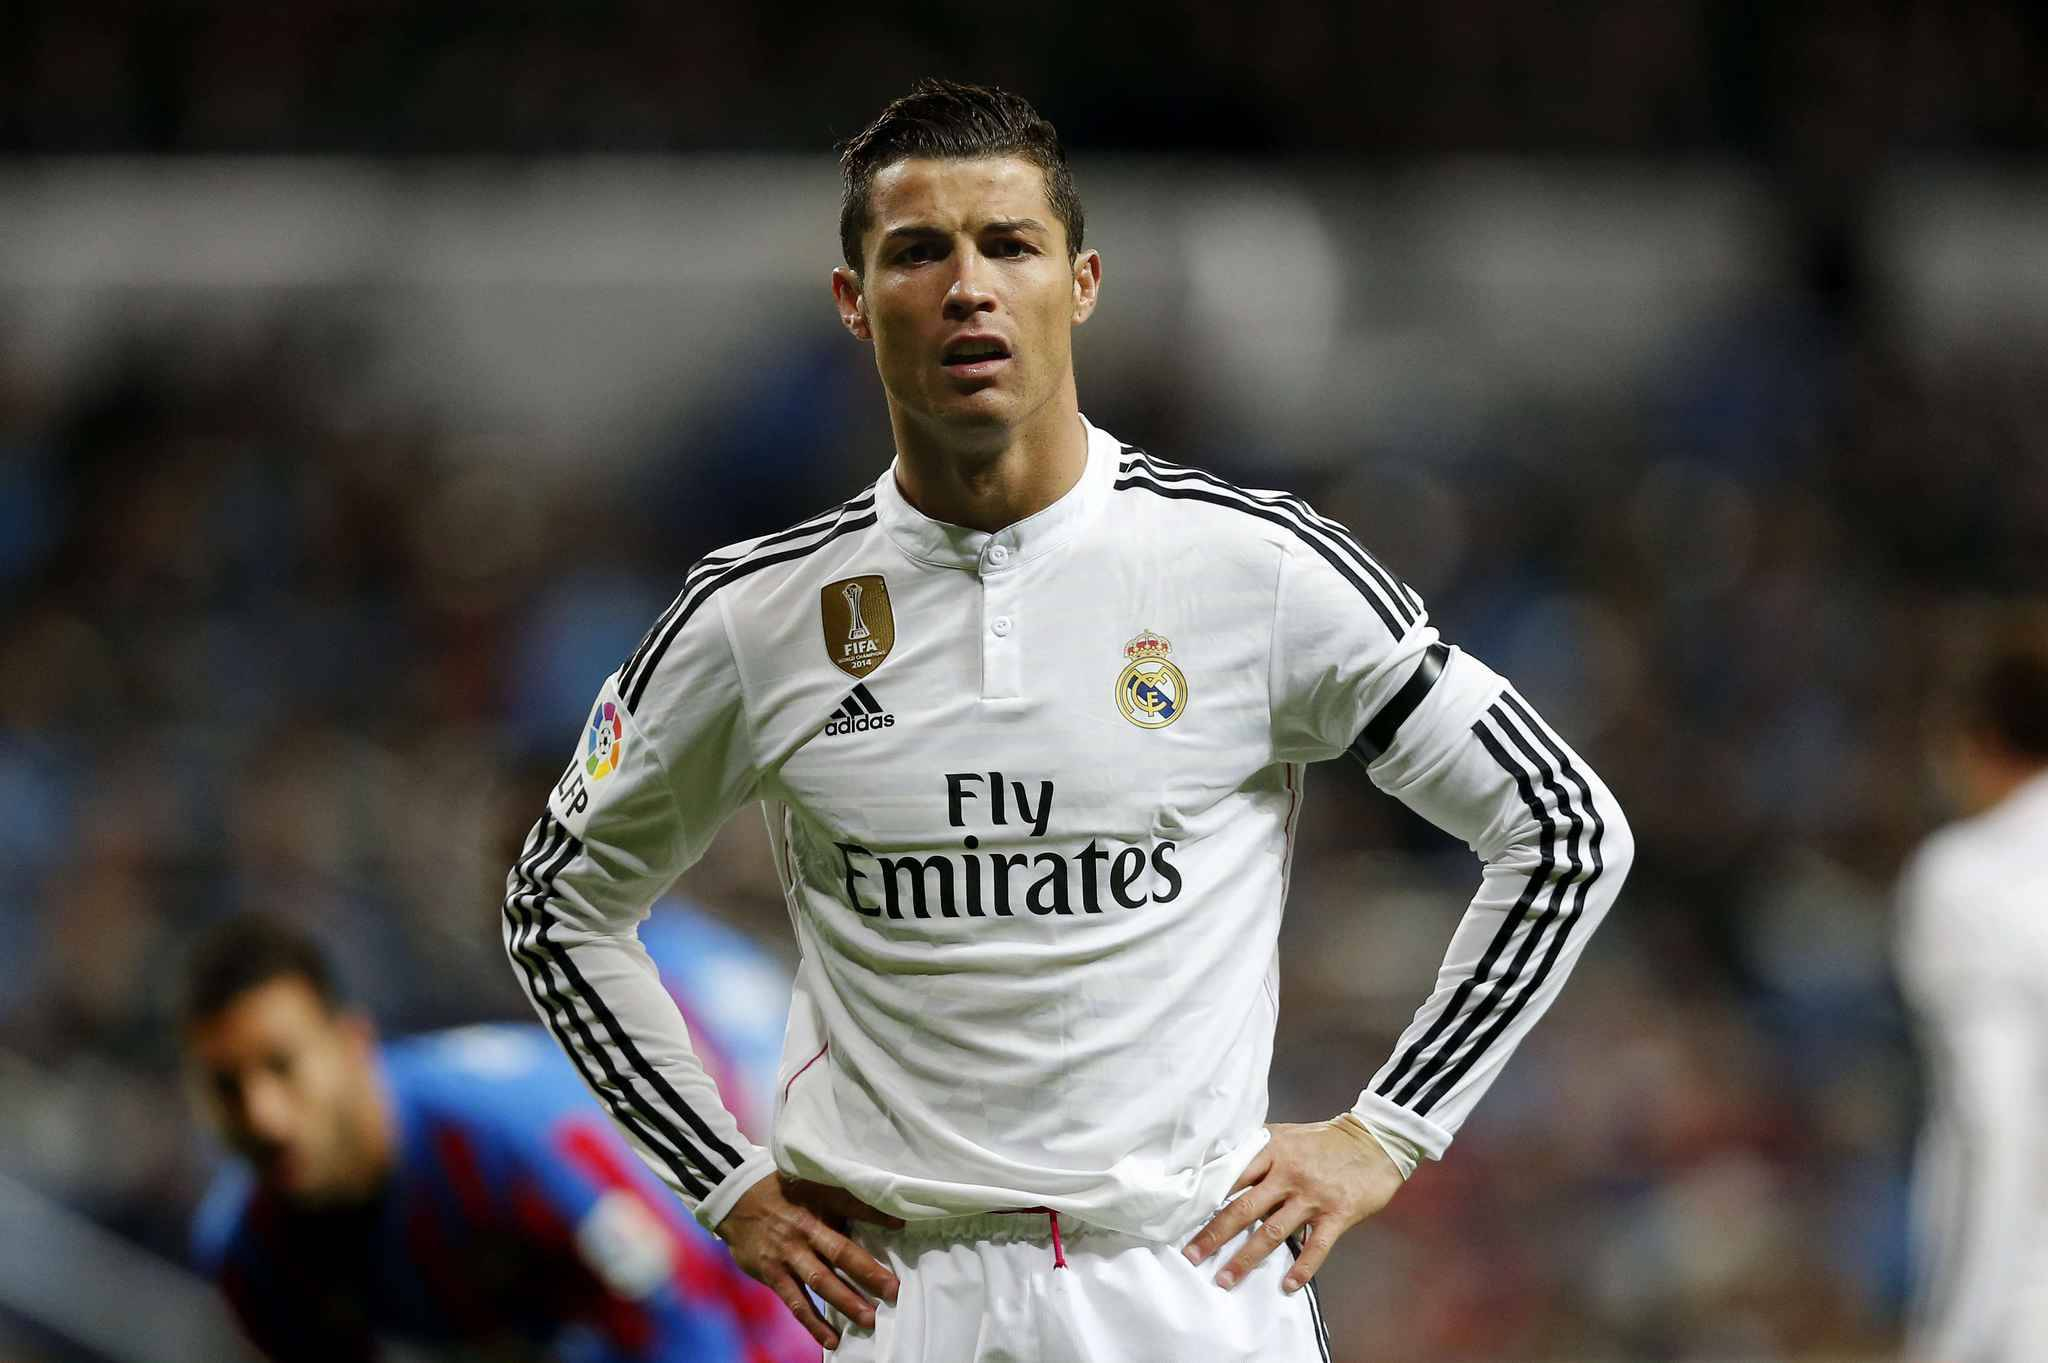 Real Madrid's Cristiano Ronaldo from Portugal reacts during a La Liga ...